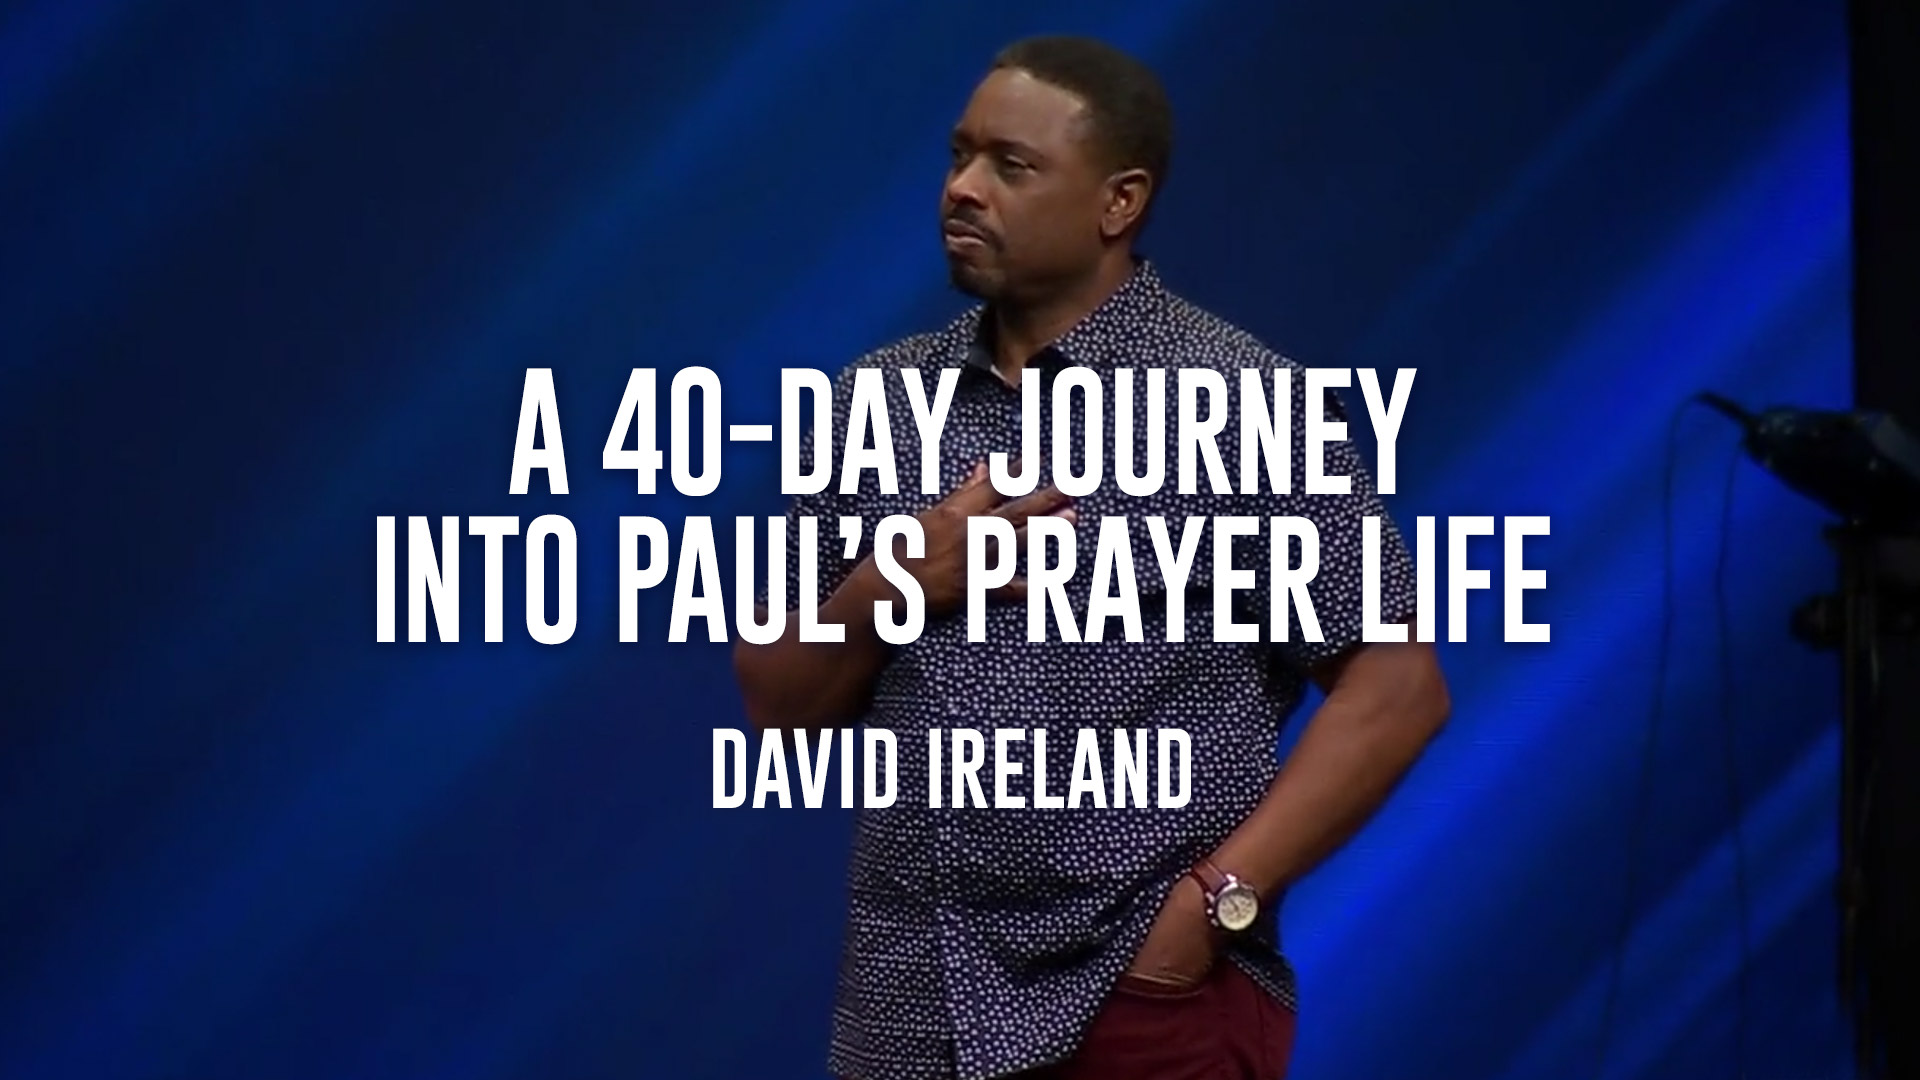 A 40-Day Journey Into Paul's Prayer Life